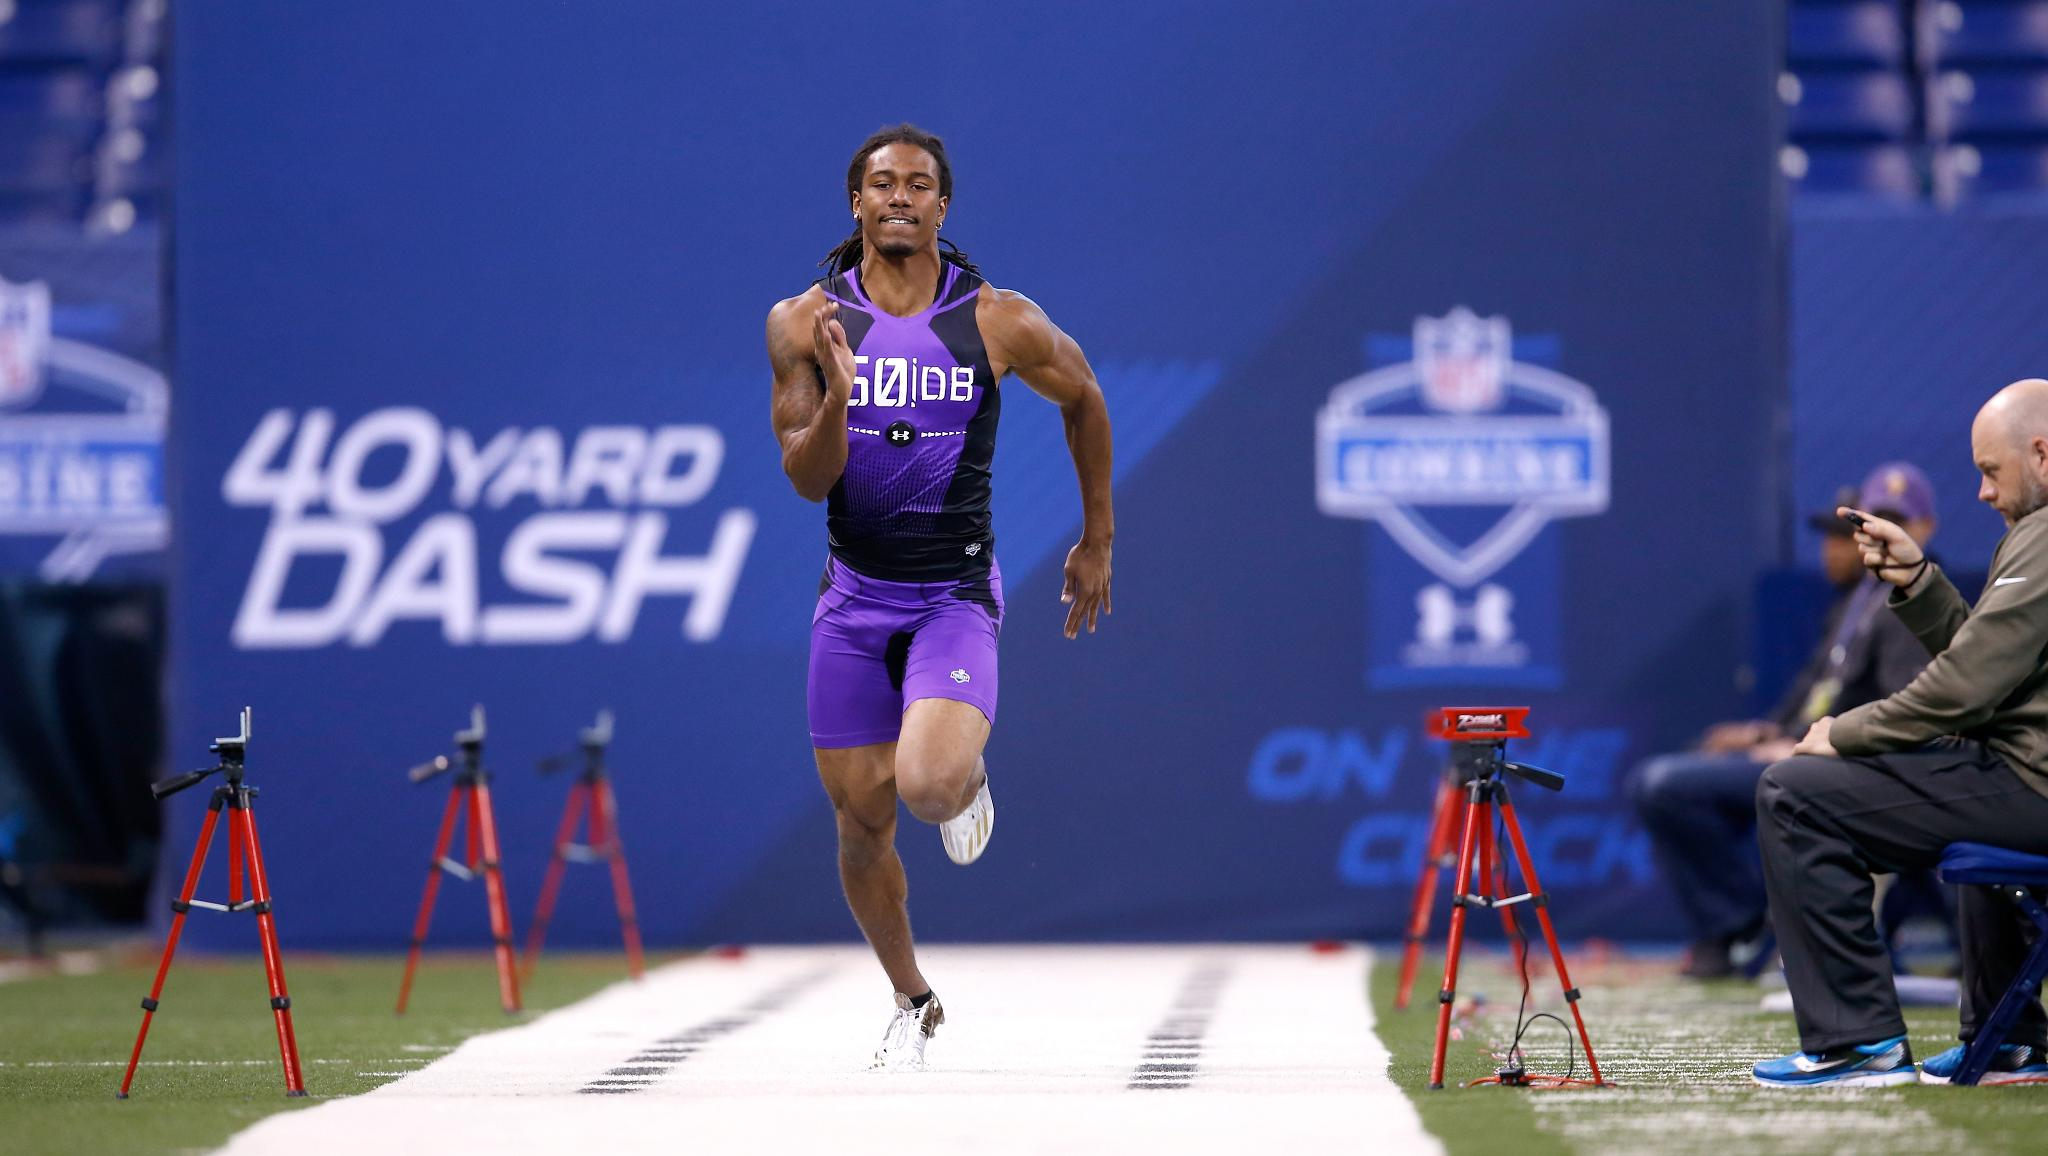 With a 4.31 40-yard dash, @TWaynes_15 was the fastest Viking at the NFL Combine.  ��: https://t.co/ShsPaae9IS https://t.co/k4XrCmGBST